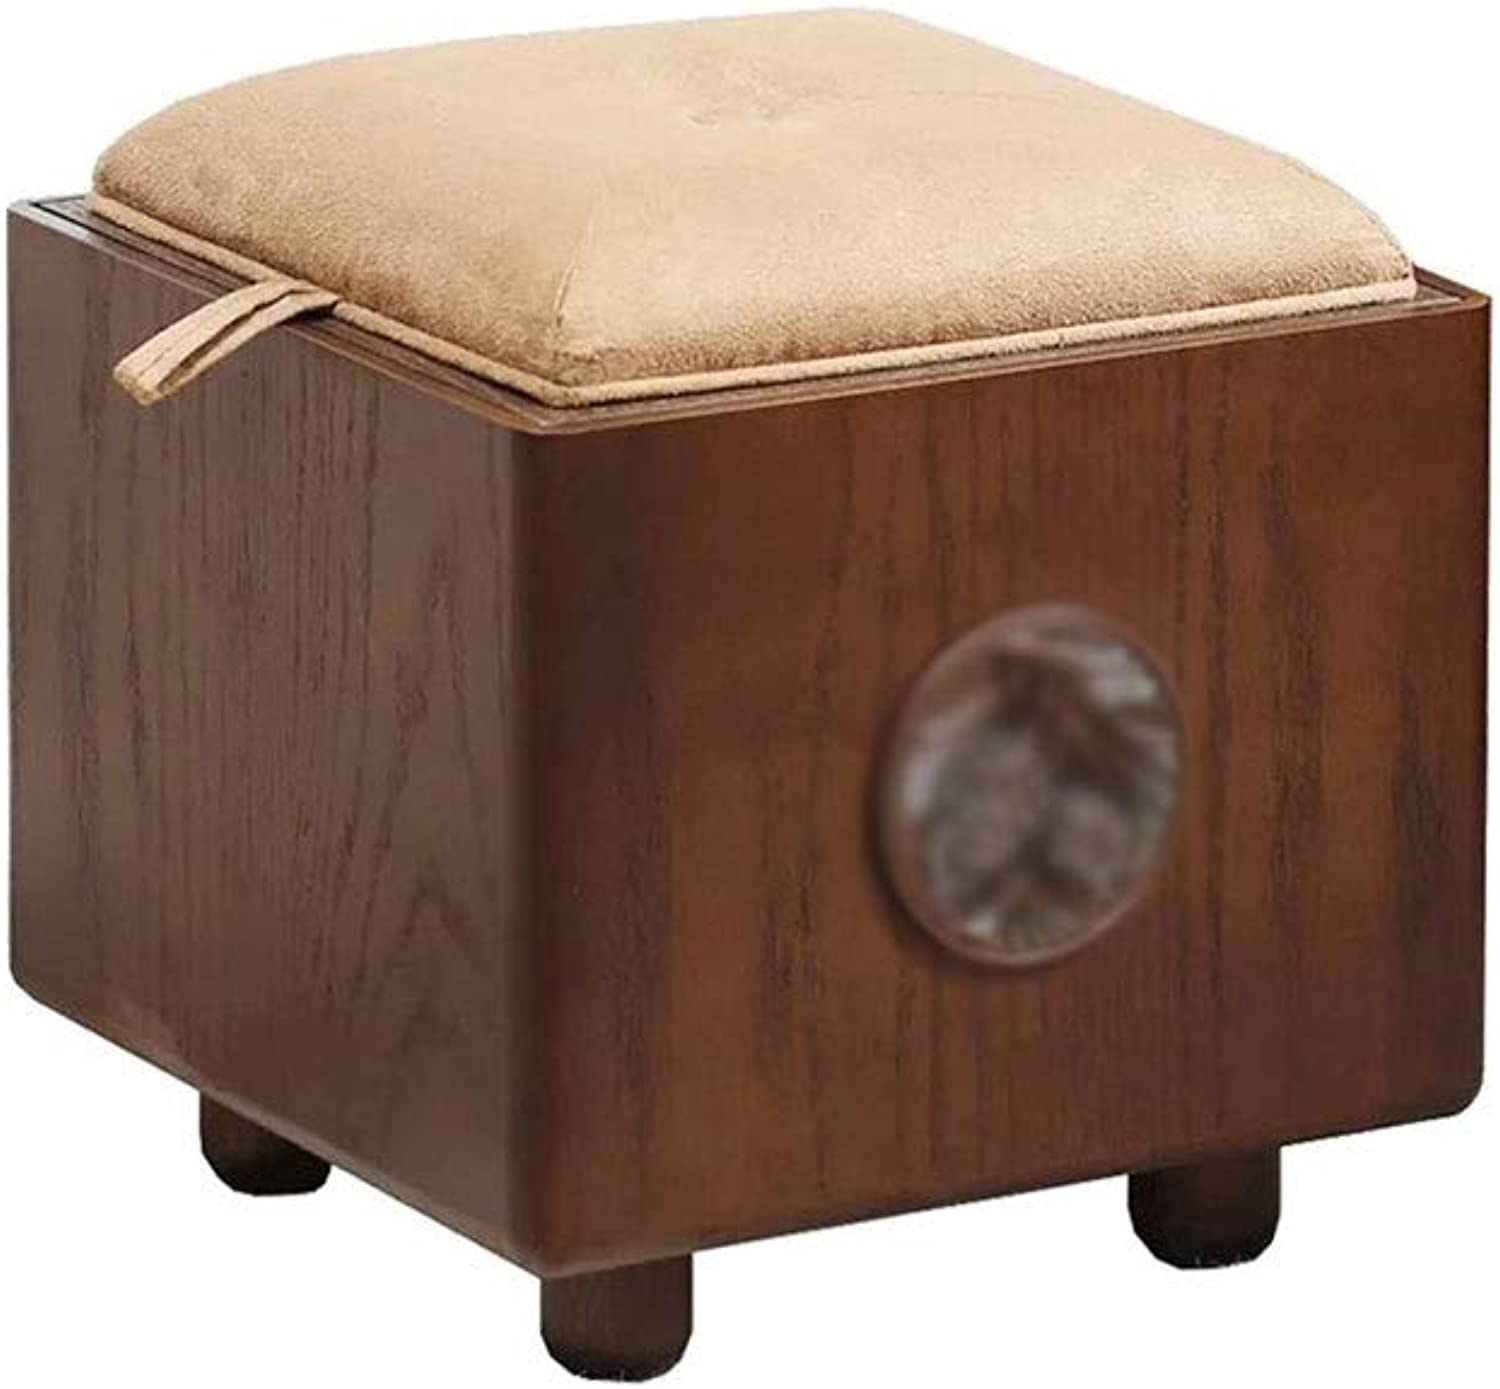 Osman Storage Stool Storage Stool can sit Adult Household Solid Wood Toy Storage Box for shoes Bench Candtong